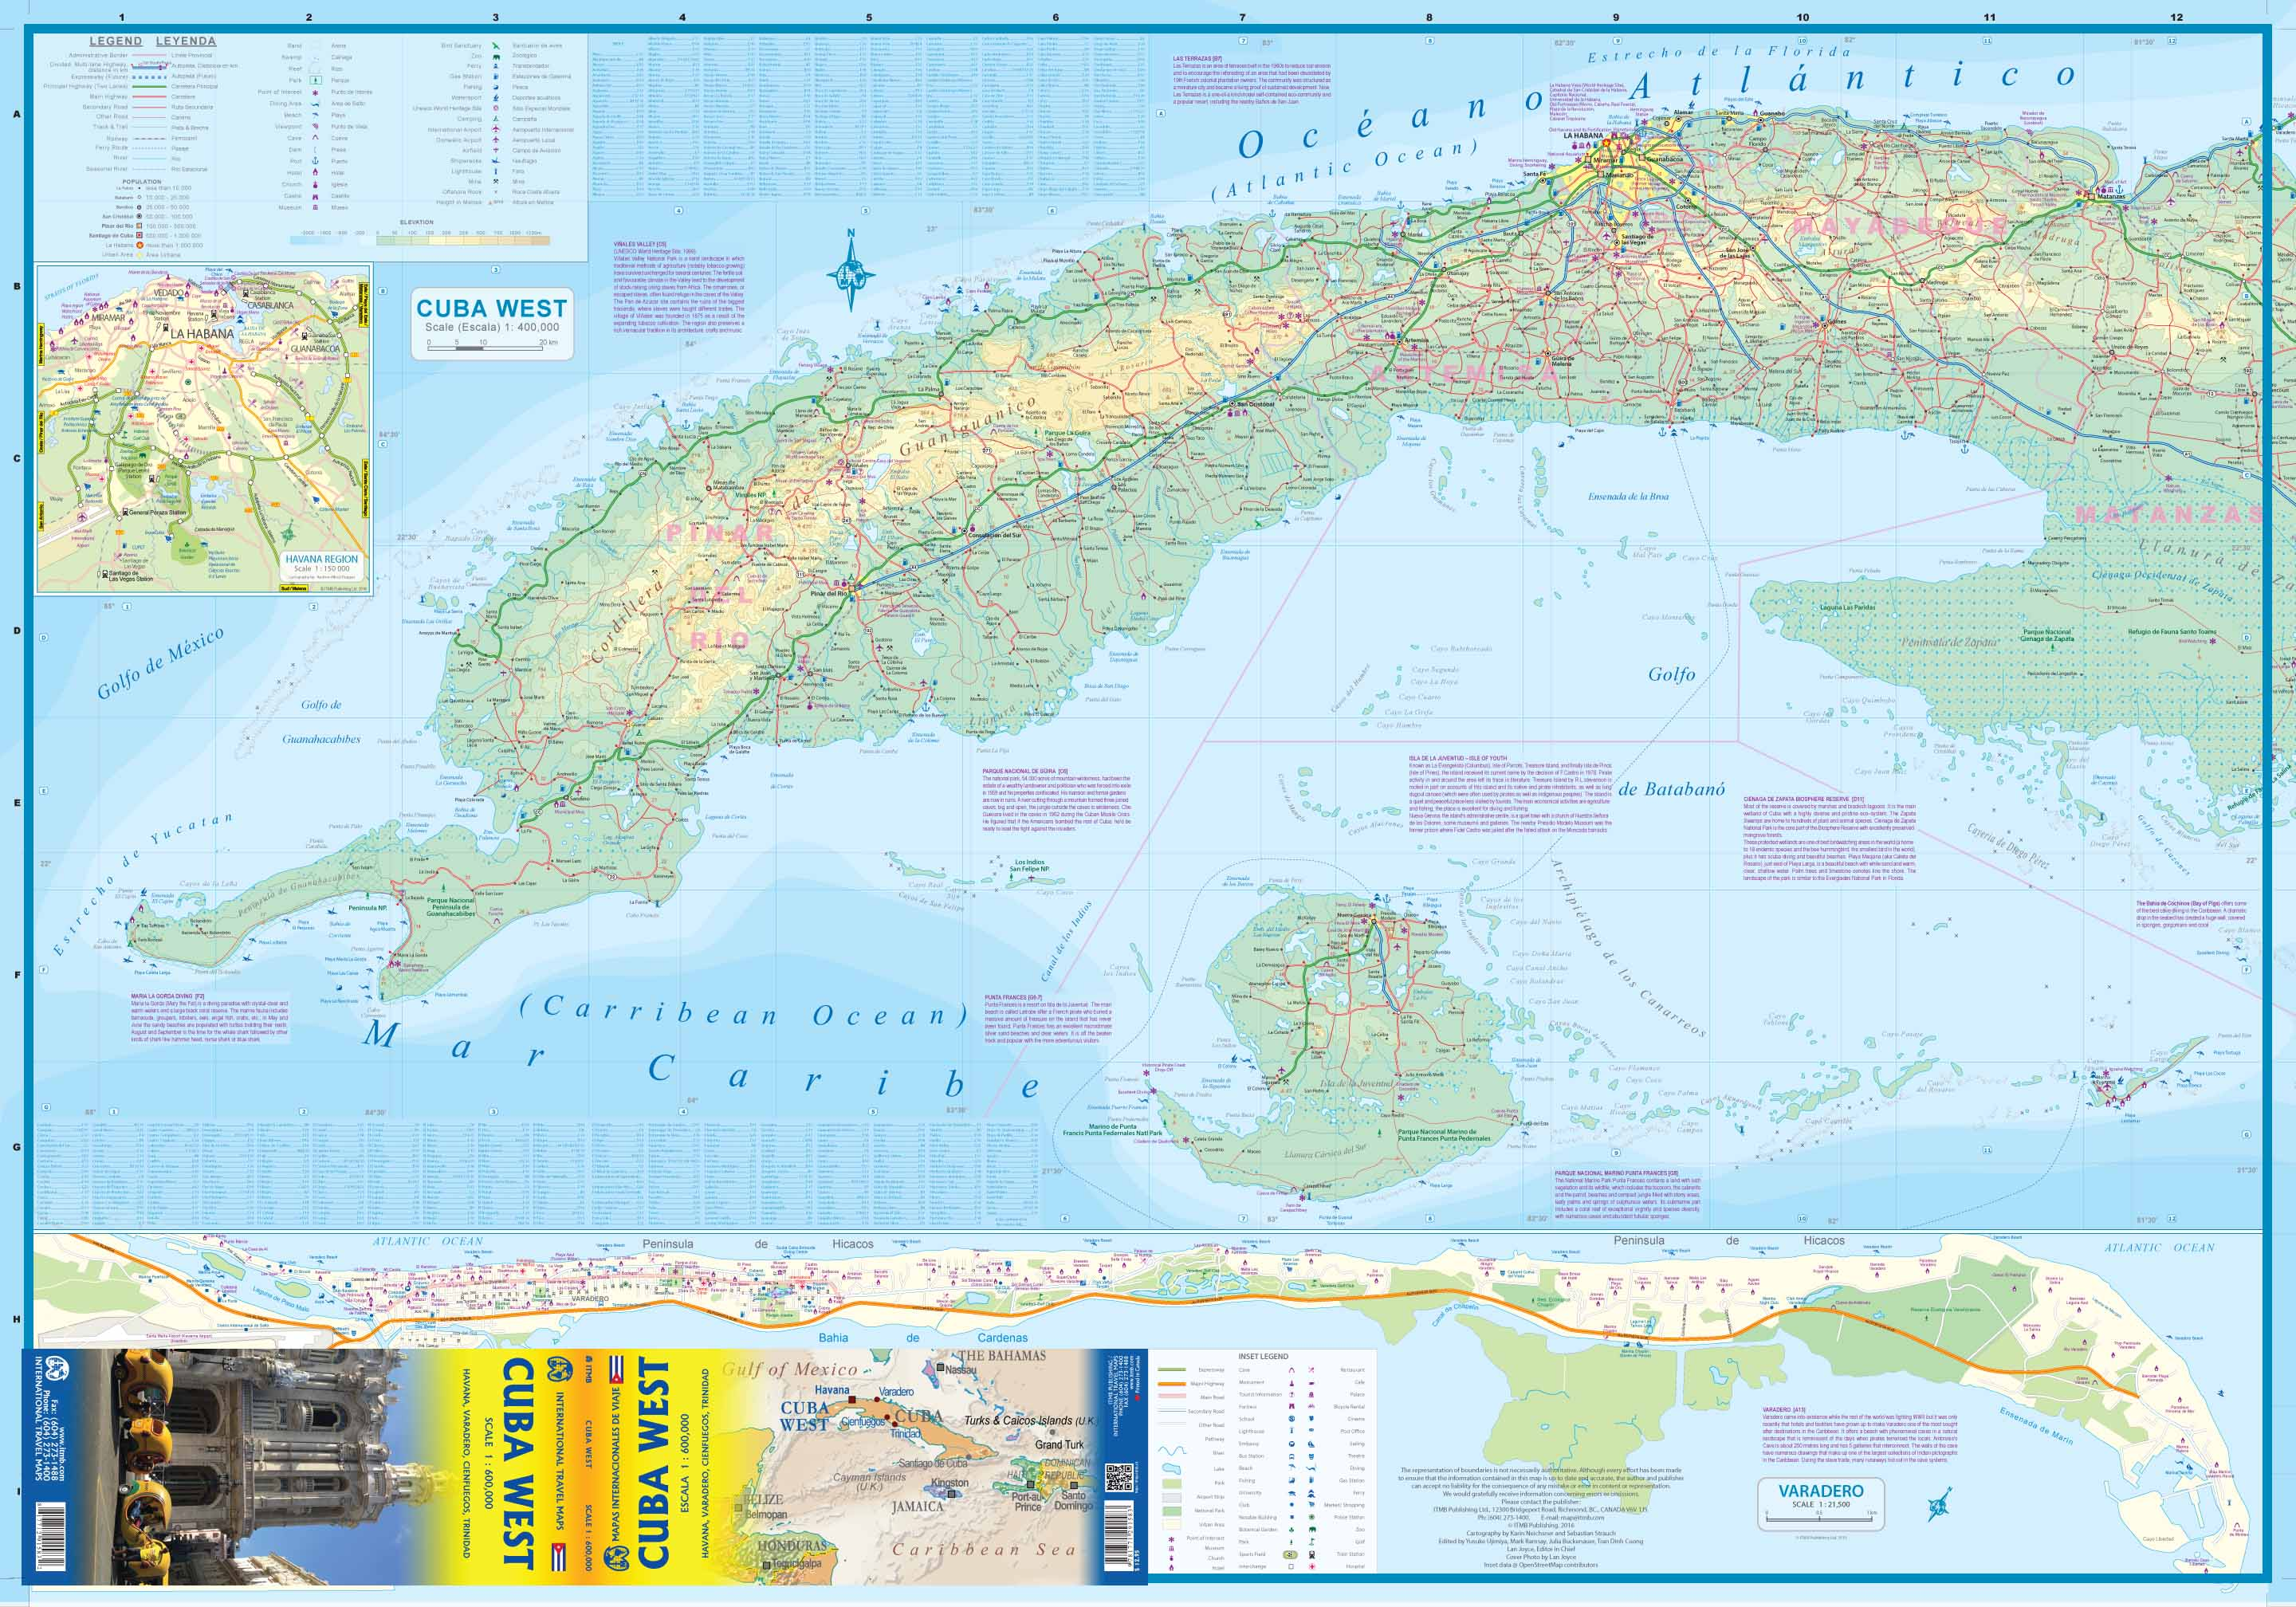 US And Cuba Map Cuba And USA Map Maps Of Cuba Peter Loud Map Of - Topographic map of western us